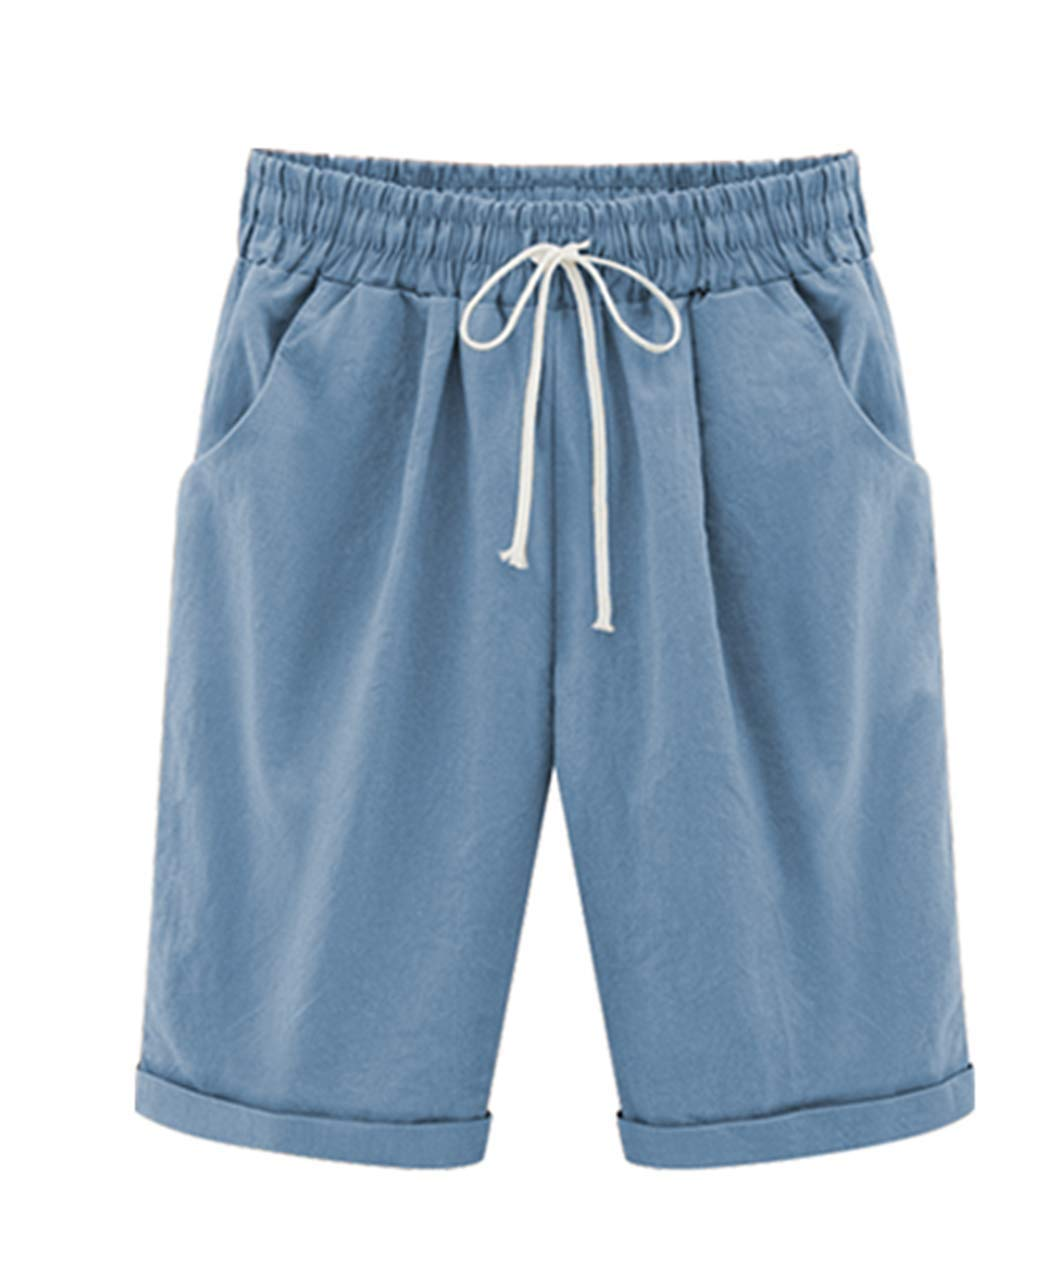 Vcansion Women's Loose Elastic-Waisted Bermuda Drawstring Casual Shorts Light Blue Asian 5XL/US 16-18 by Vcansion